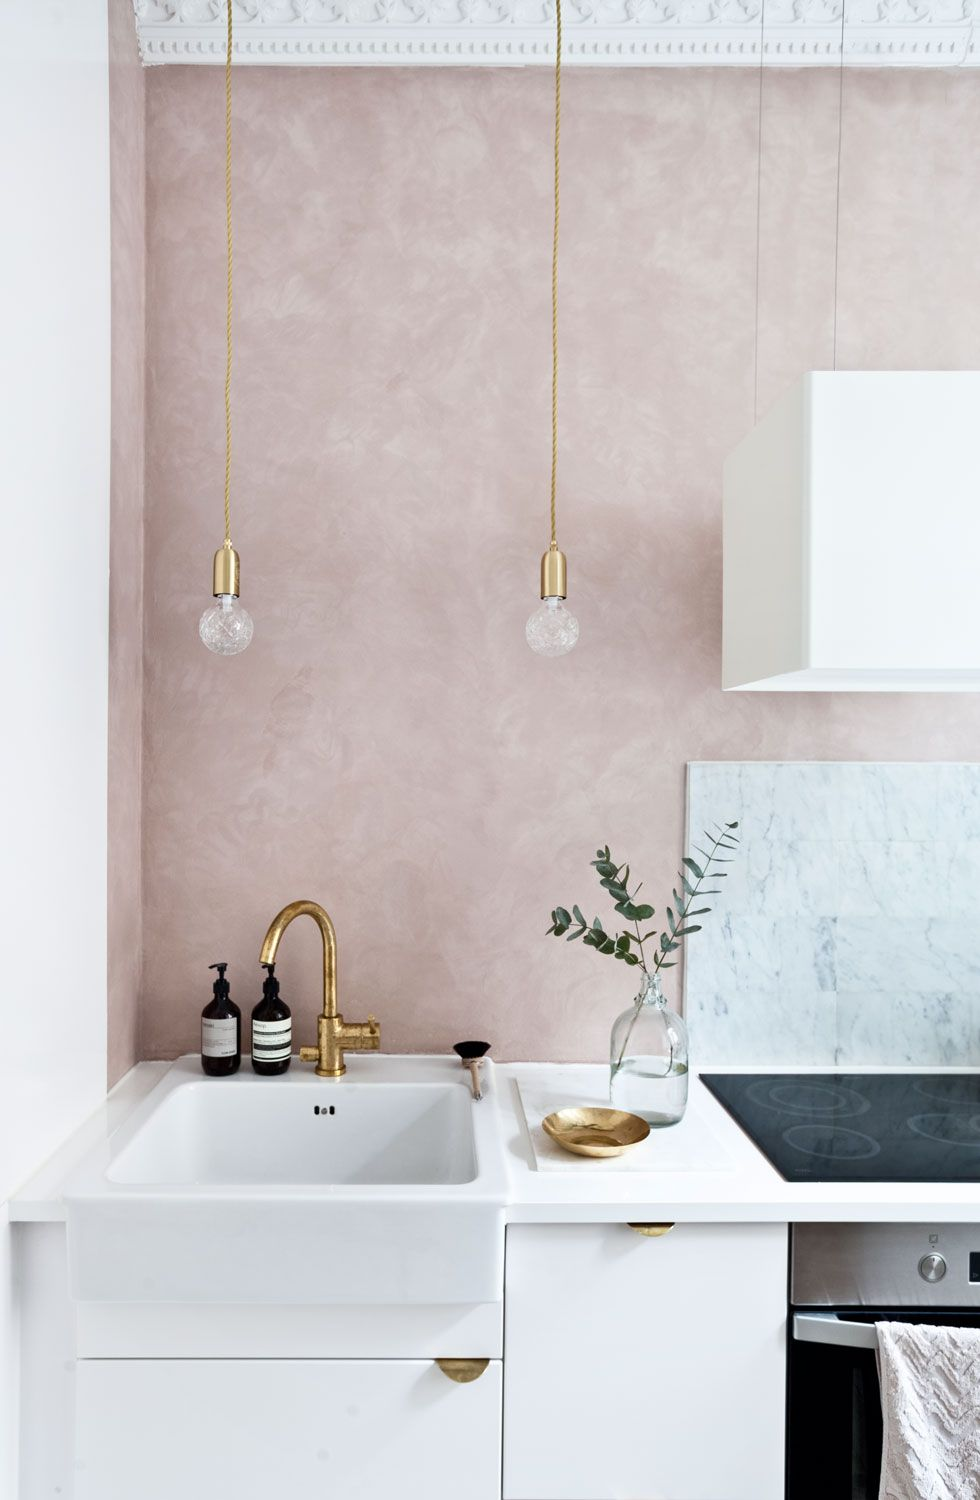 Gravity Home: White kitchen with a soft pink wall